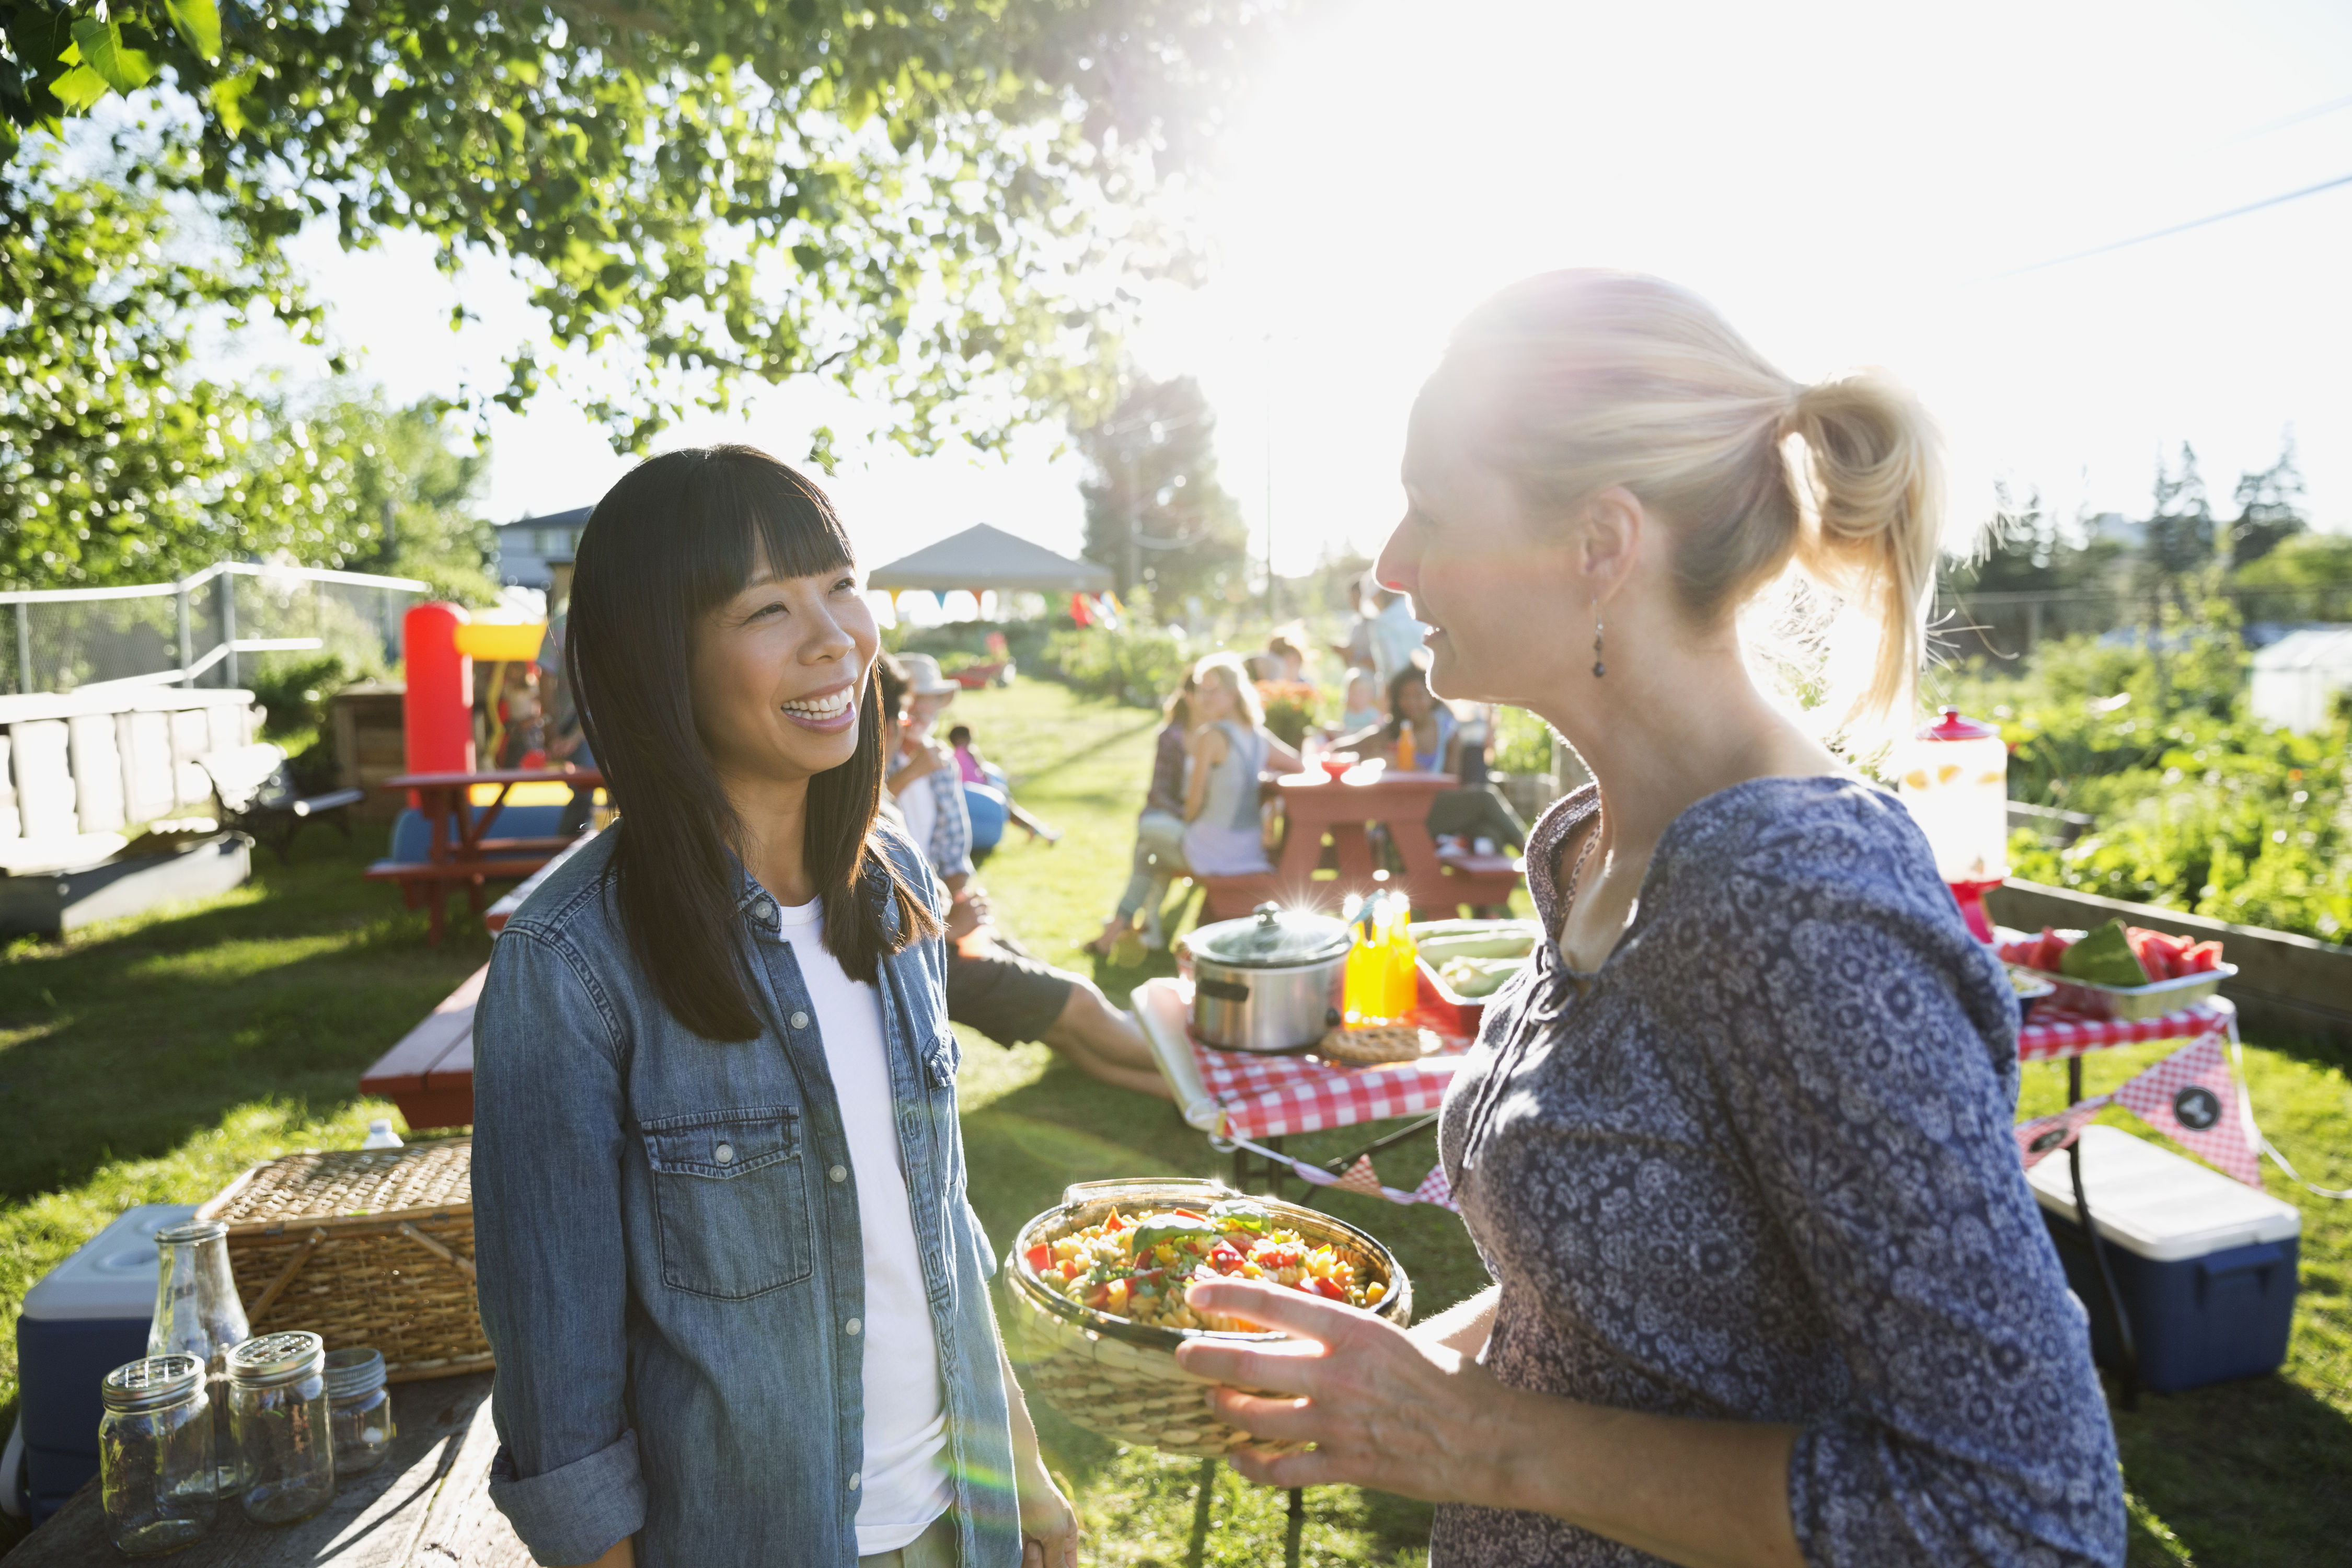 Etiquette Rules to Know Before Your Next Potluck